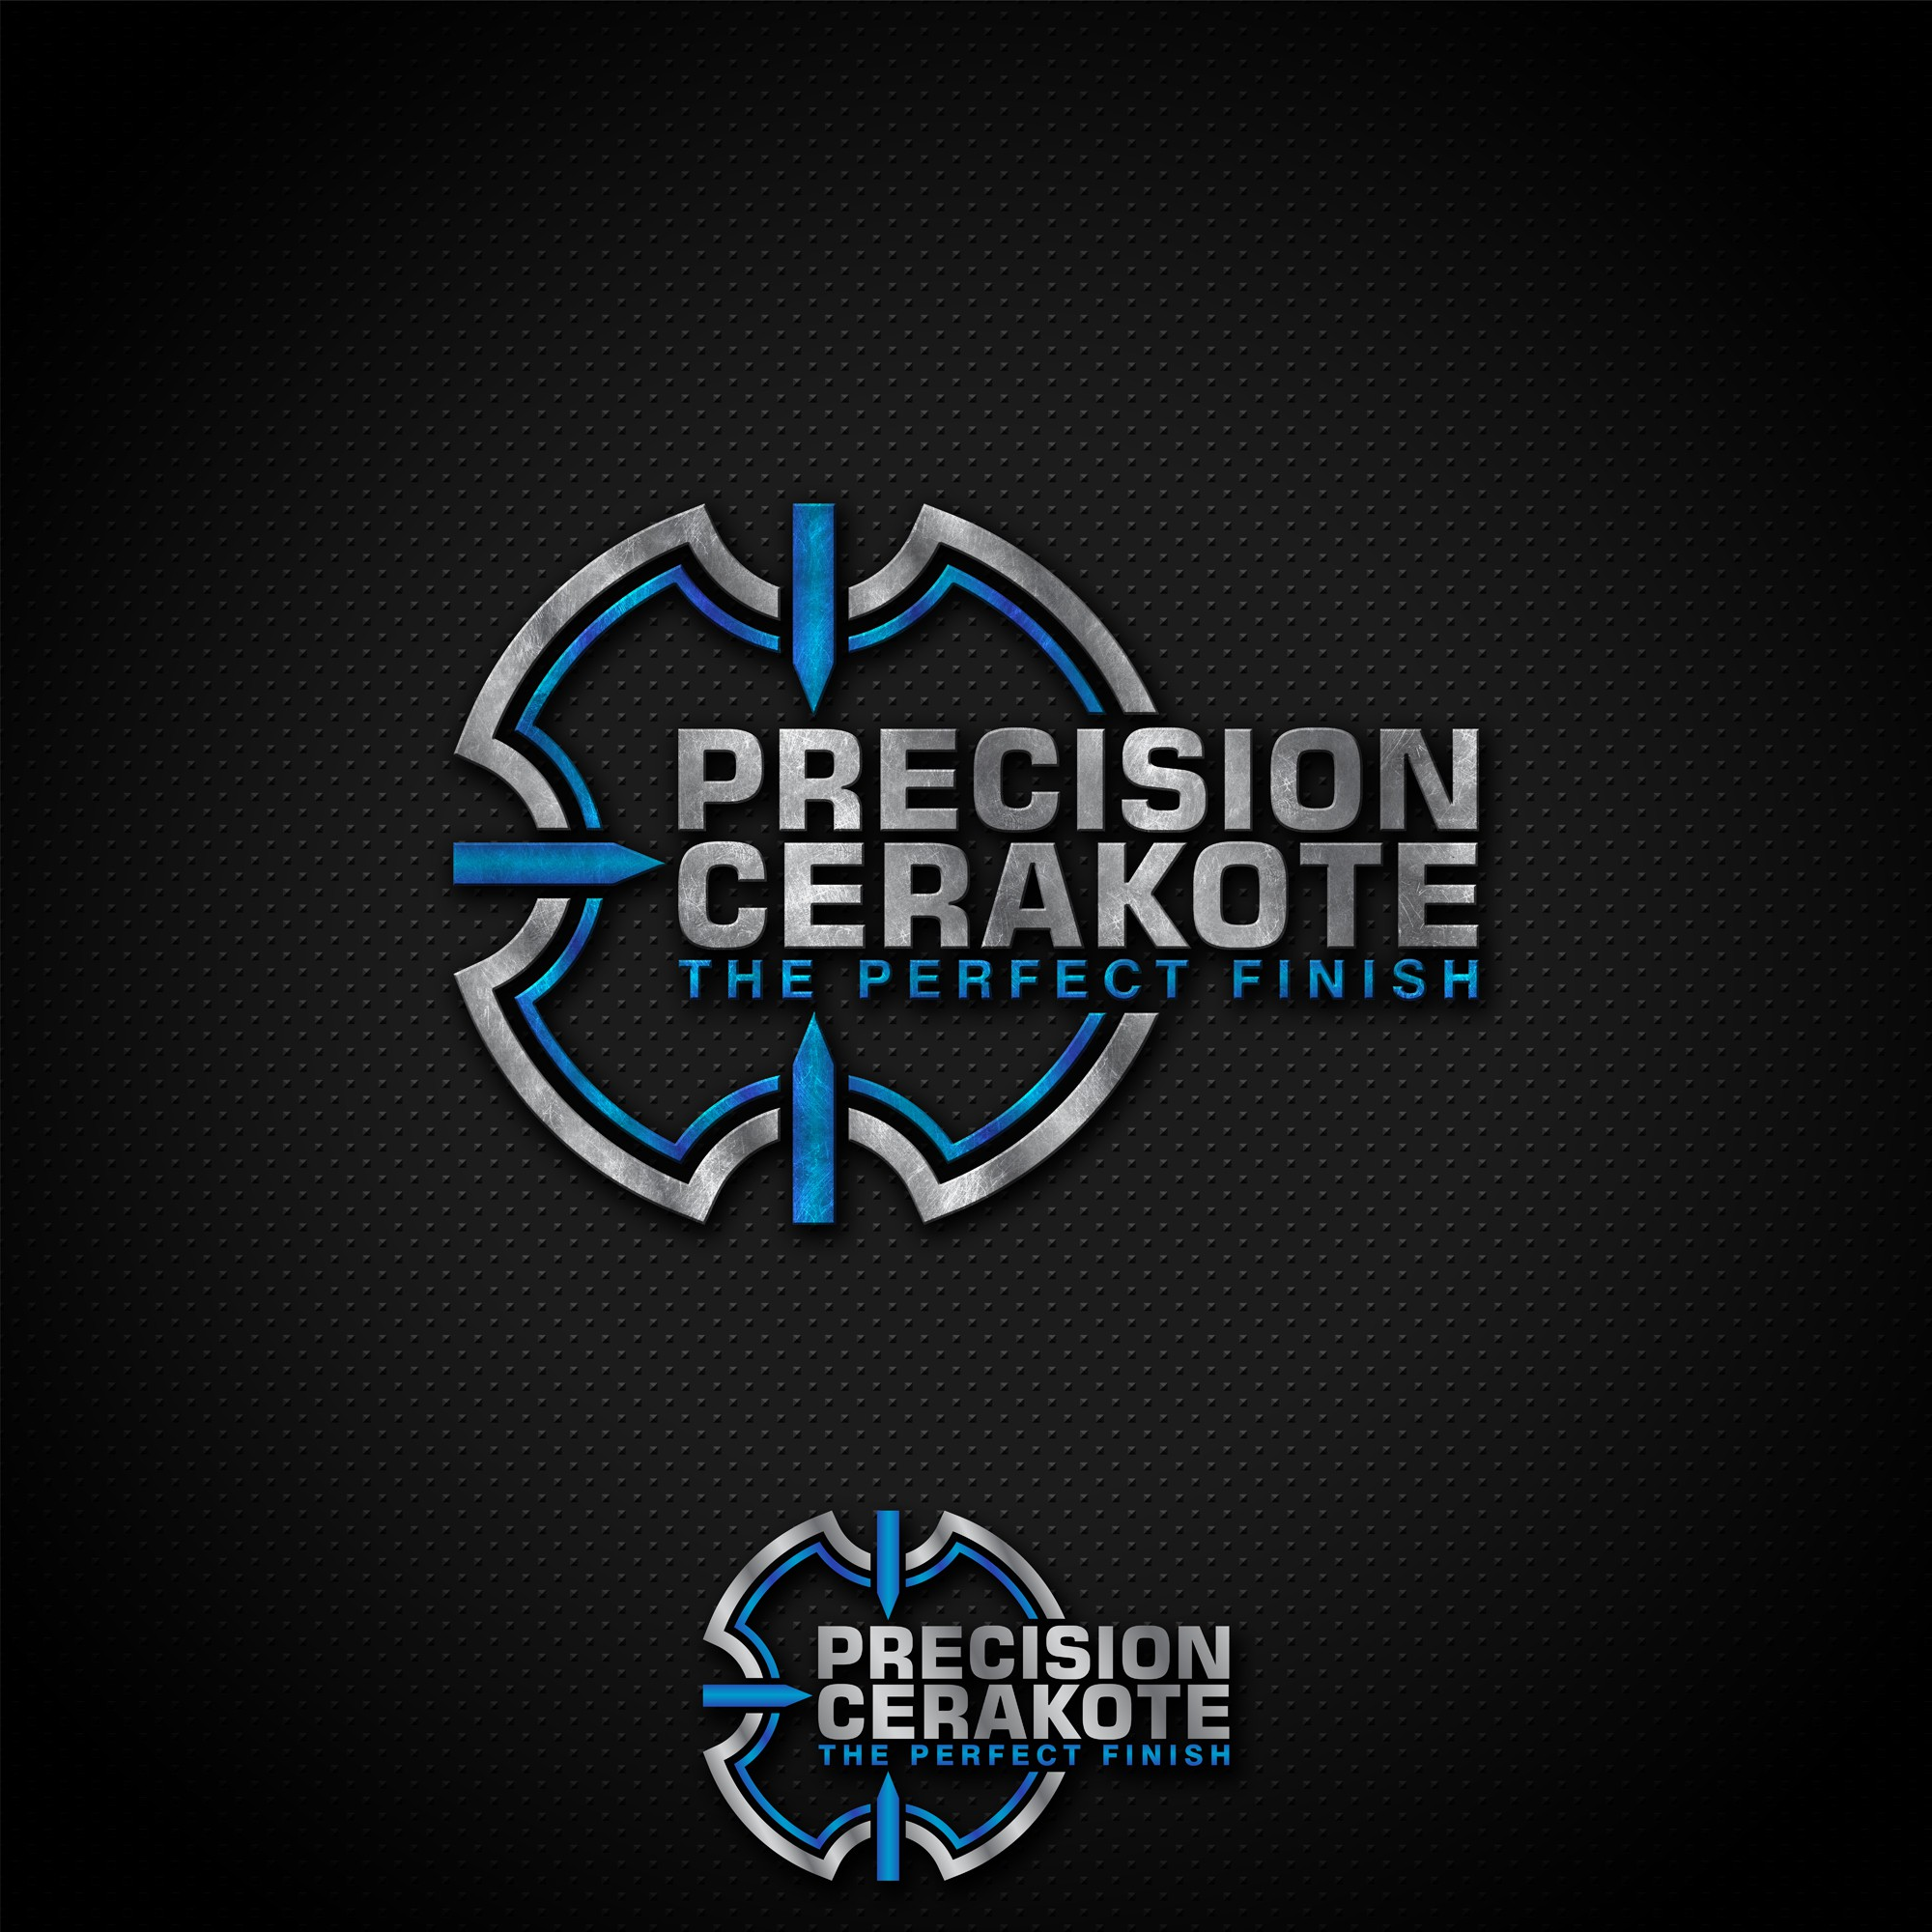 logo/business card design. POSSIBLE FUTURE WORK. Customized state of the art firearms coatings